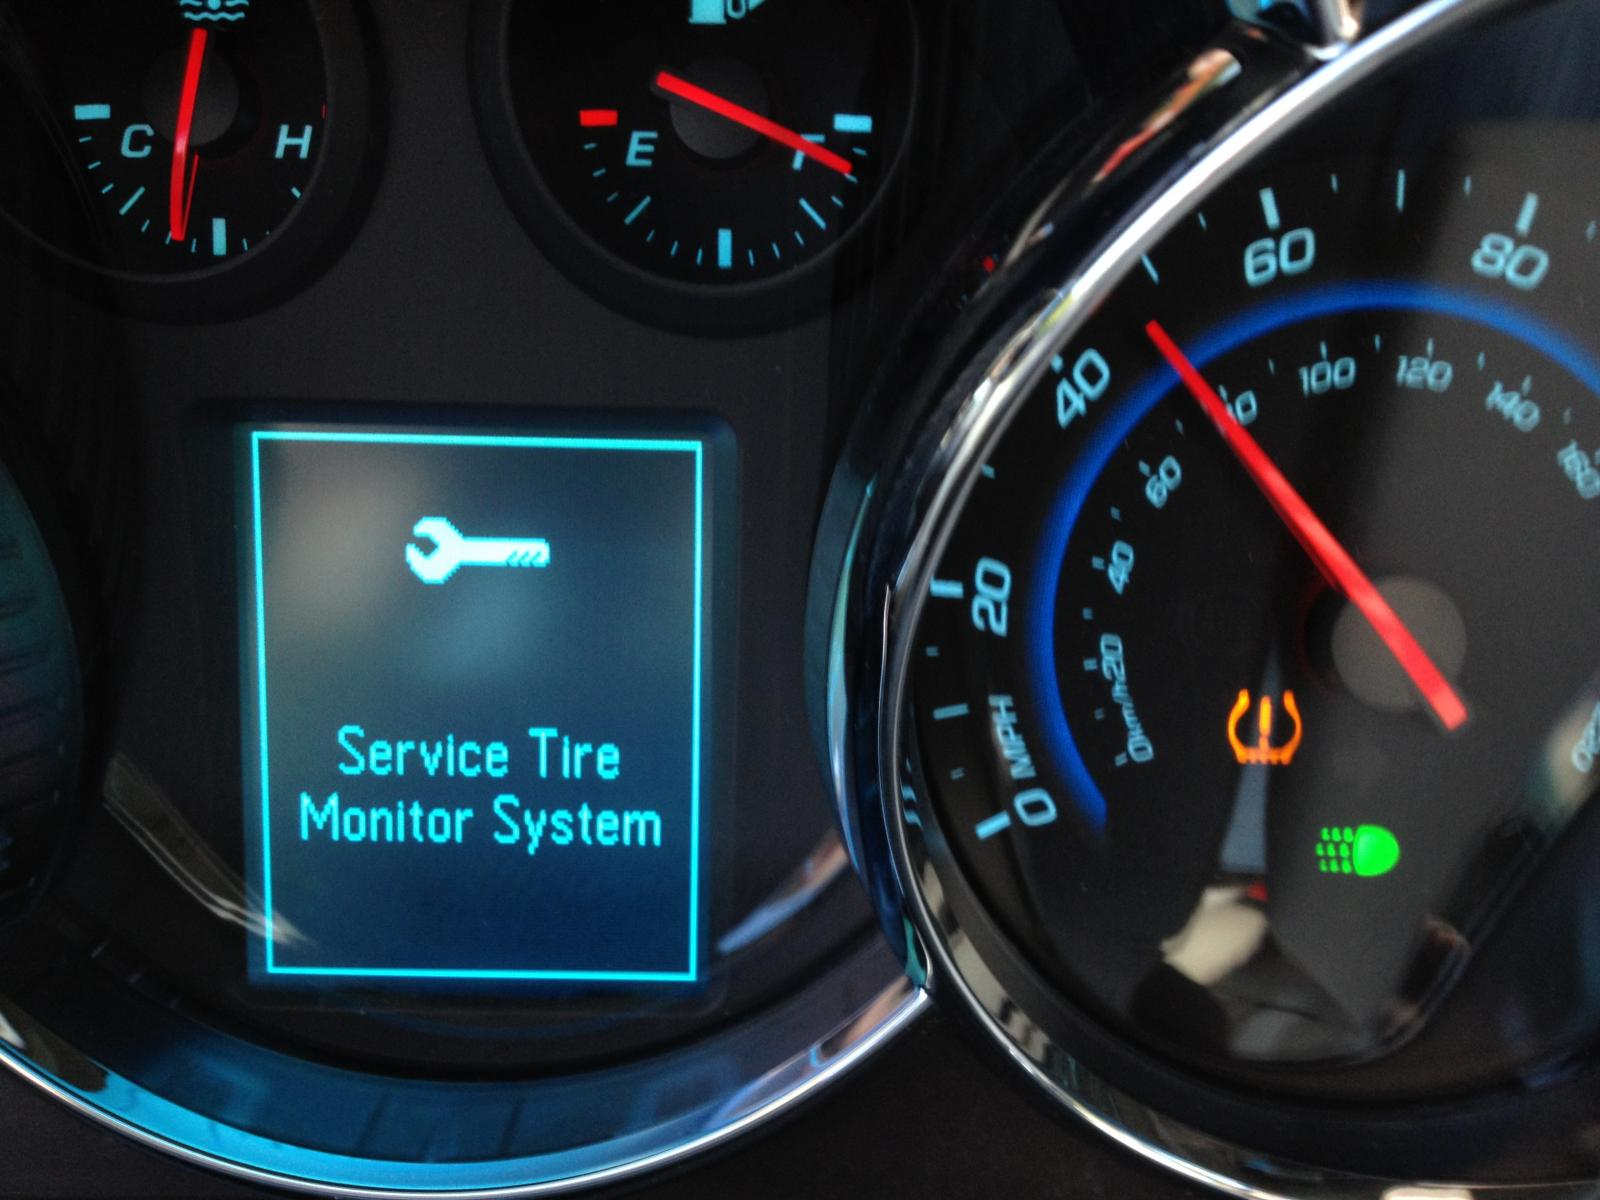 Chevy Cruze Tire Pressure >> Service Tire Monitor System Warning